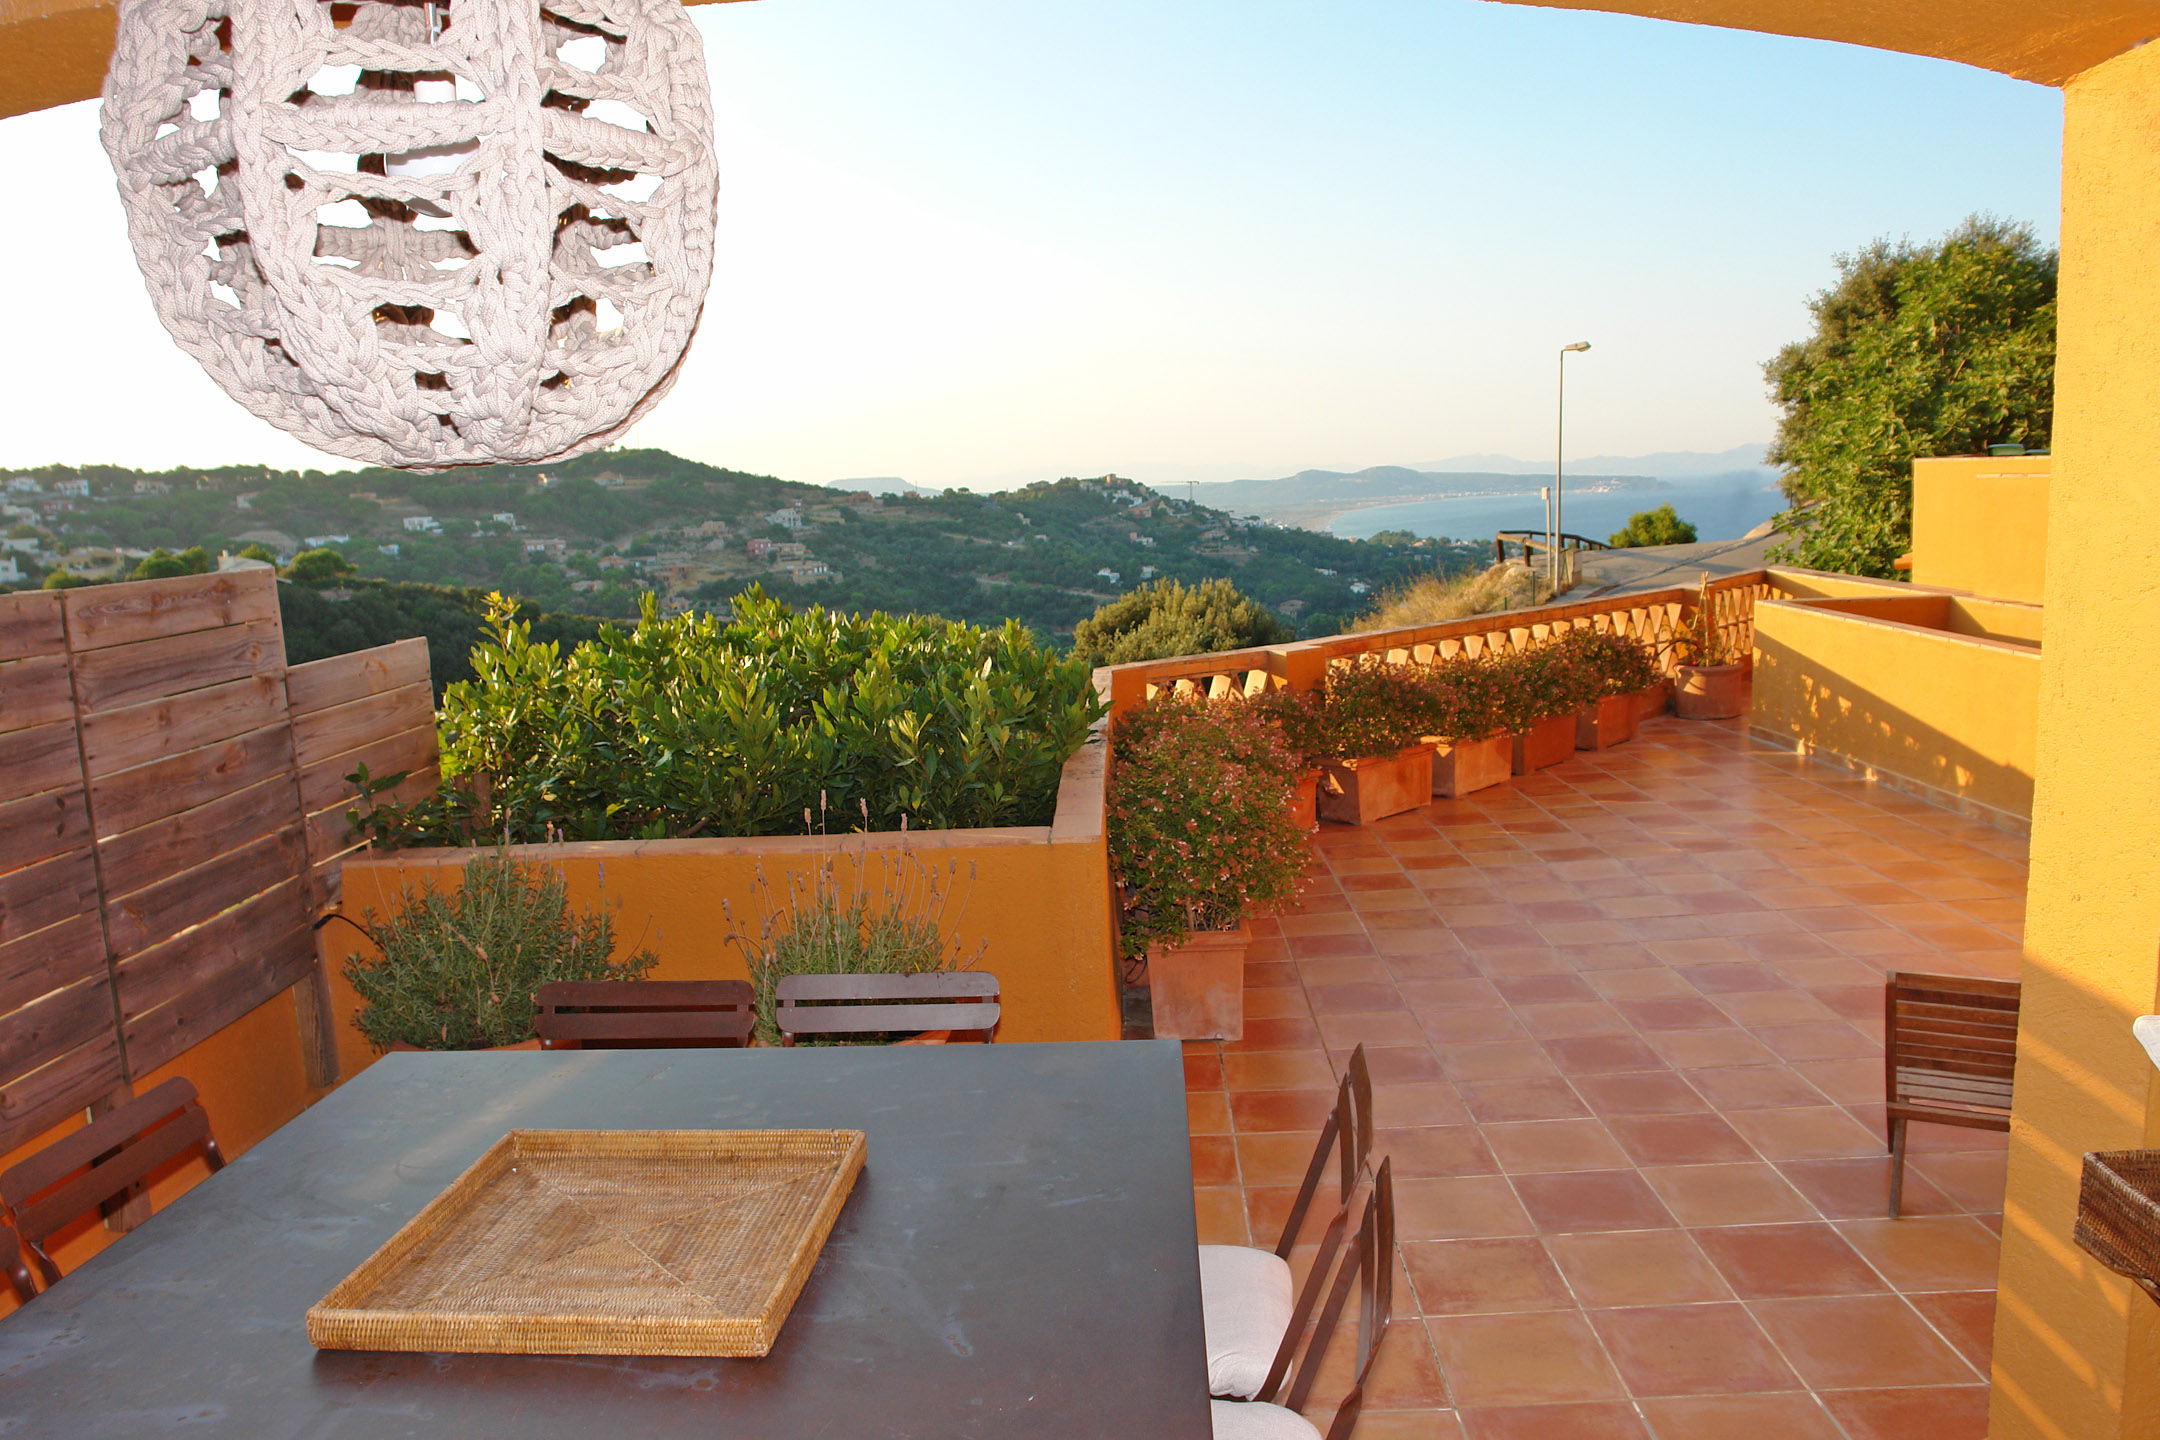 Single Family Home for Sale at Terraced house with views and walking distance to the village of Begur Begur, Costa Brava 17255 Spain